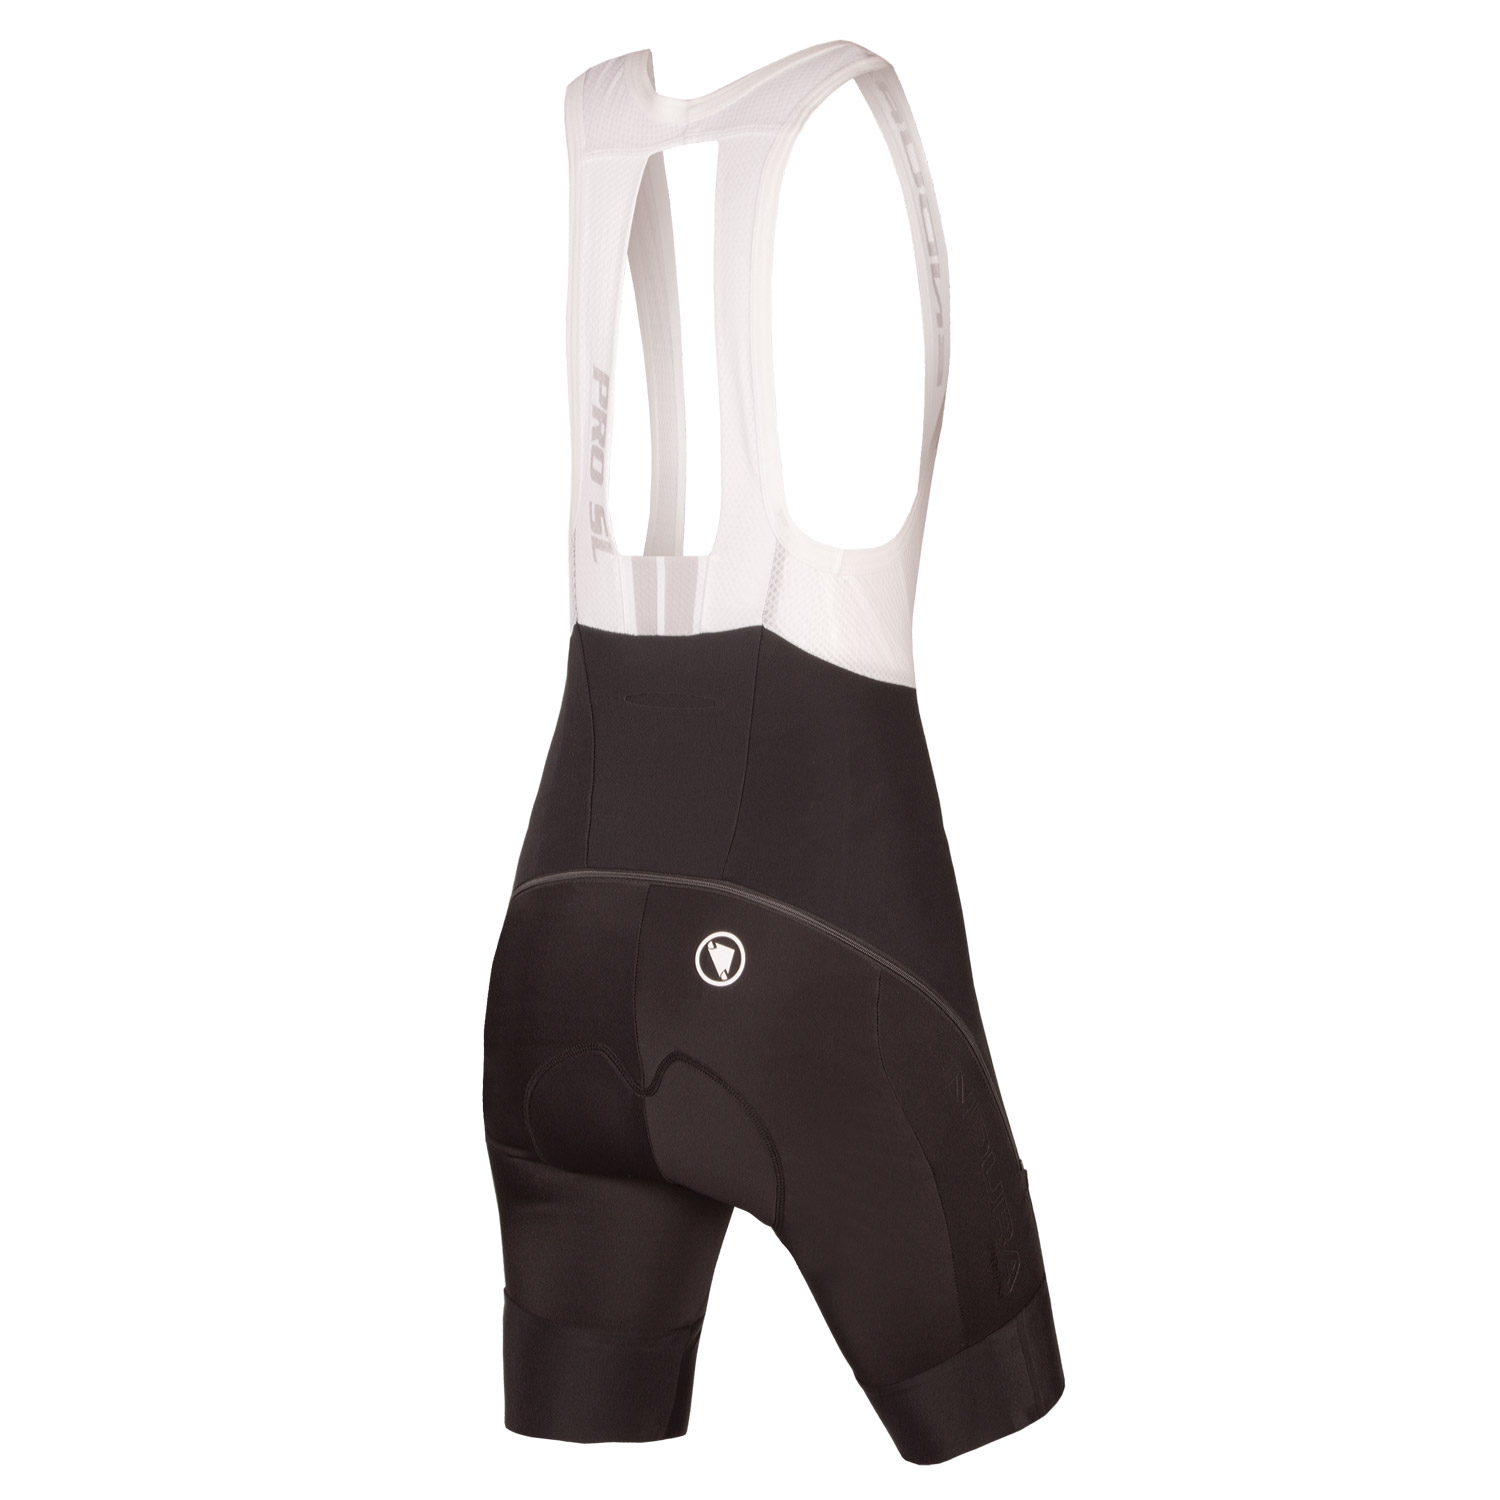 Women's Pro SL Bib Short DropSeat (wide-pad) Black